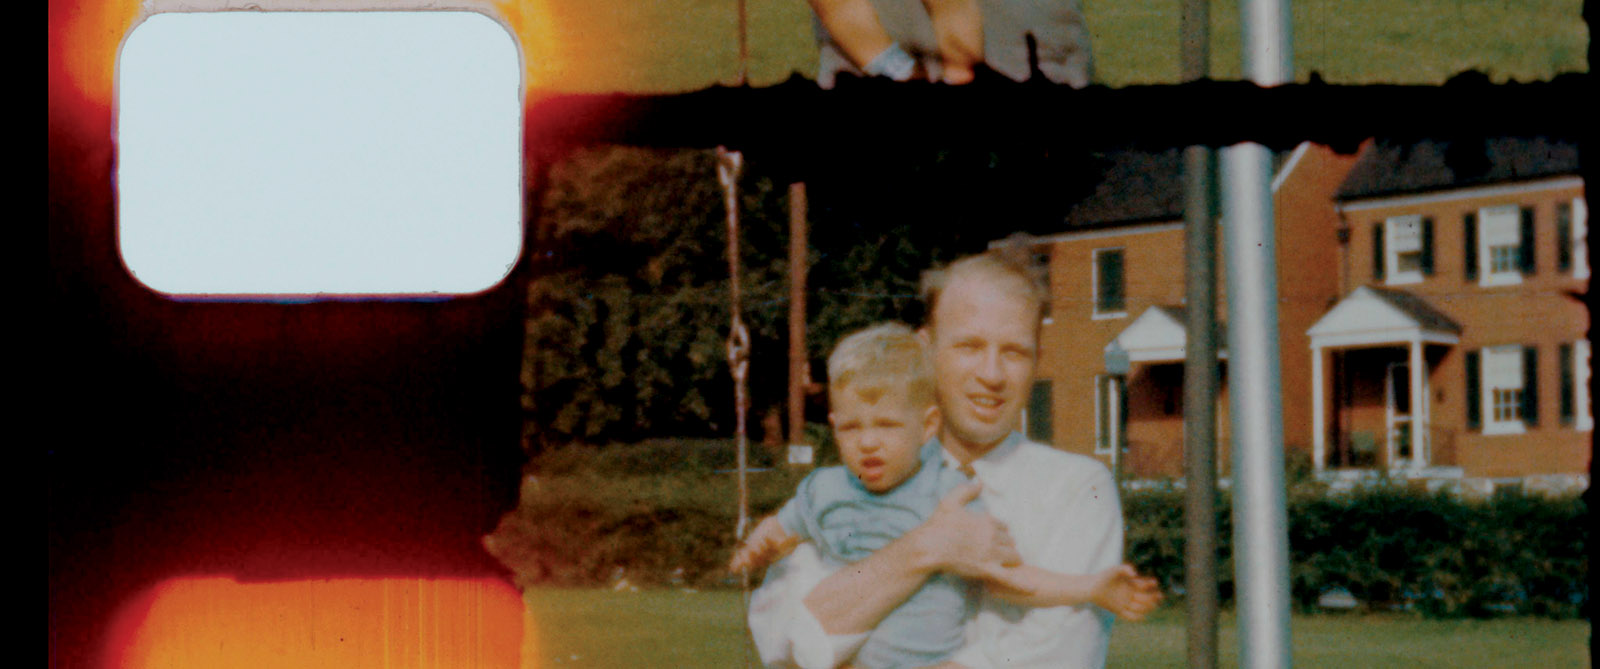 Eric Olson with his father, Frank Olson, Frederick, Maryland, late 1940s; from Errol Morris's Wormwood